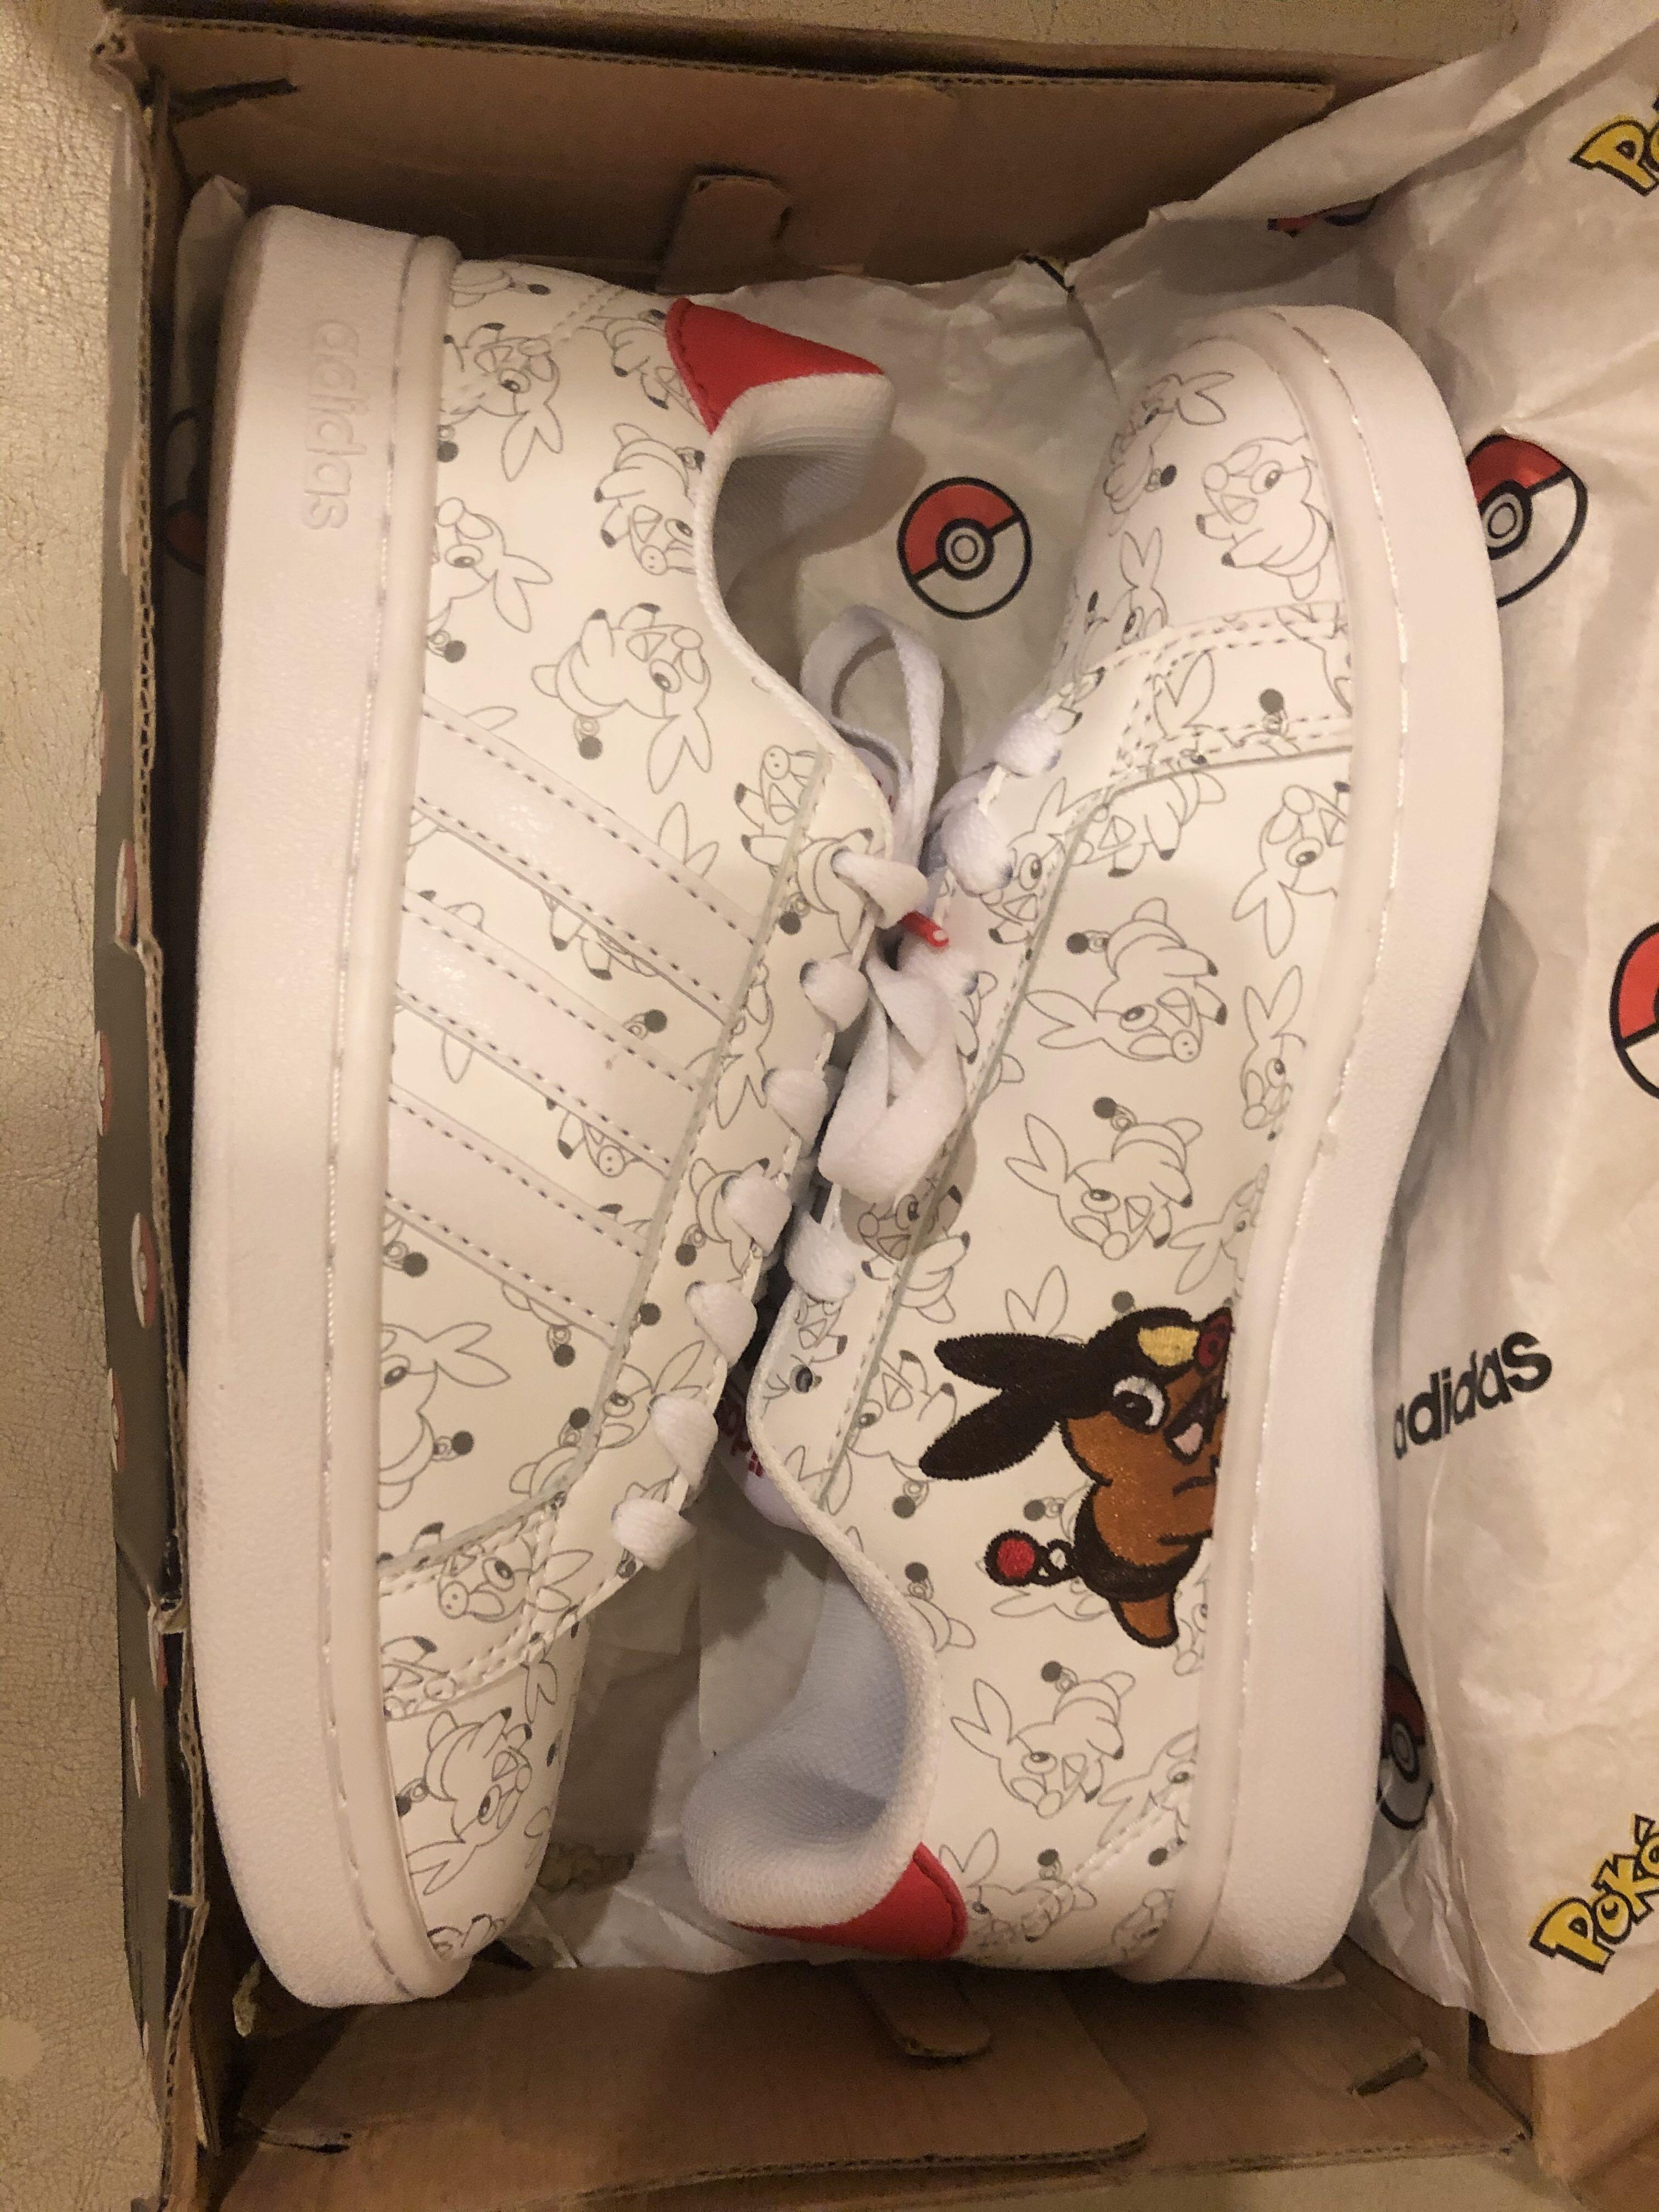 Electrizar Último Completamente seco  INSTOCK]Adidas Stan Smith x Pokemon Pokémon Pikachu Clover Joint Smith  Sports Sneakers Shoes, Women's Fashion, Shoes, Sneakers on Carousell